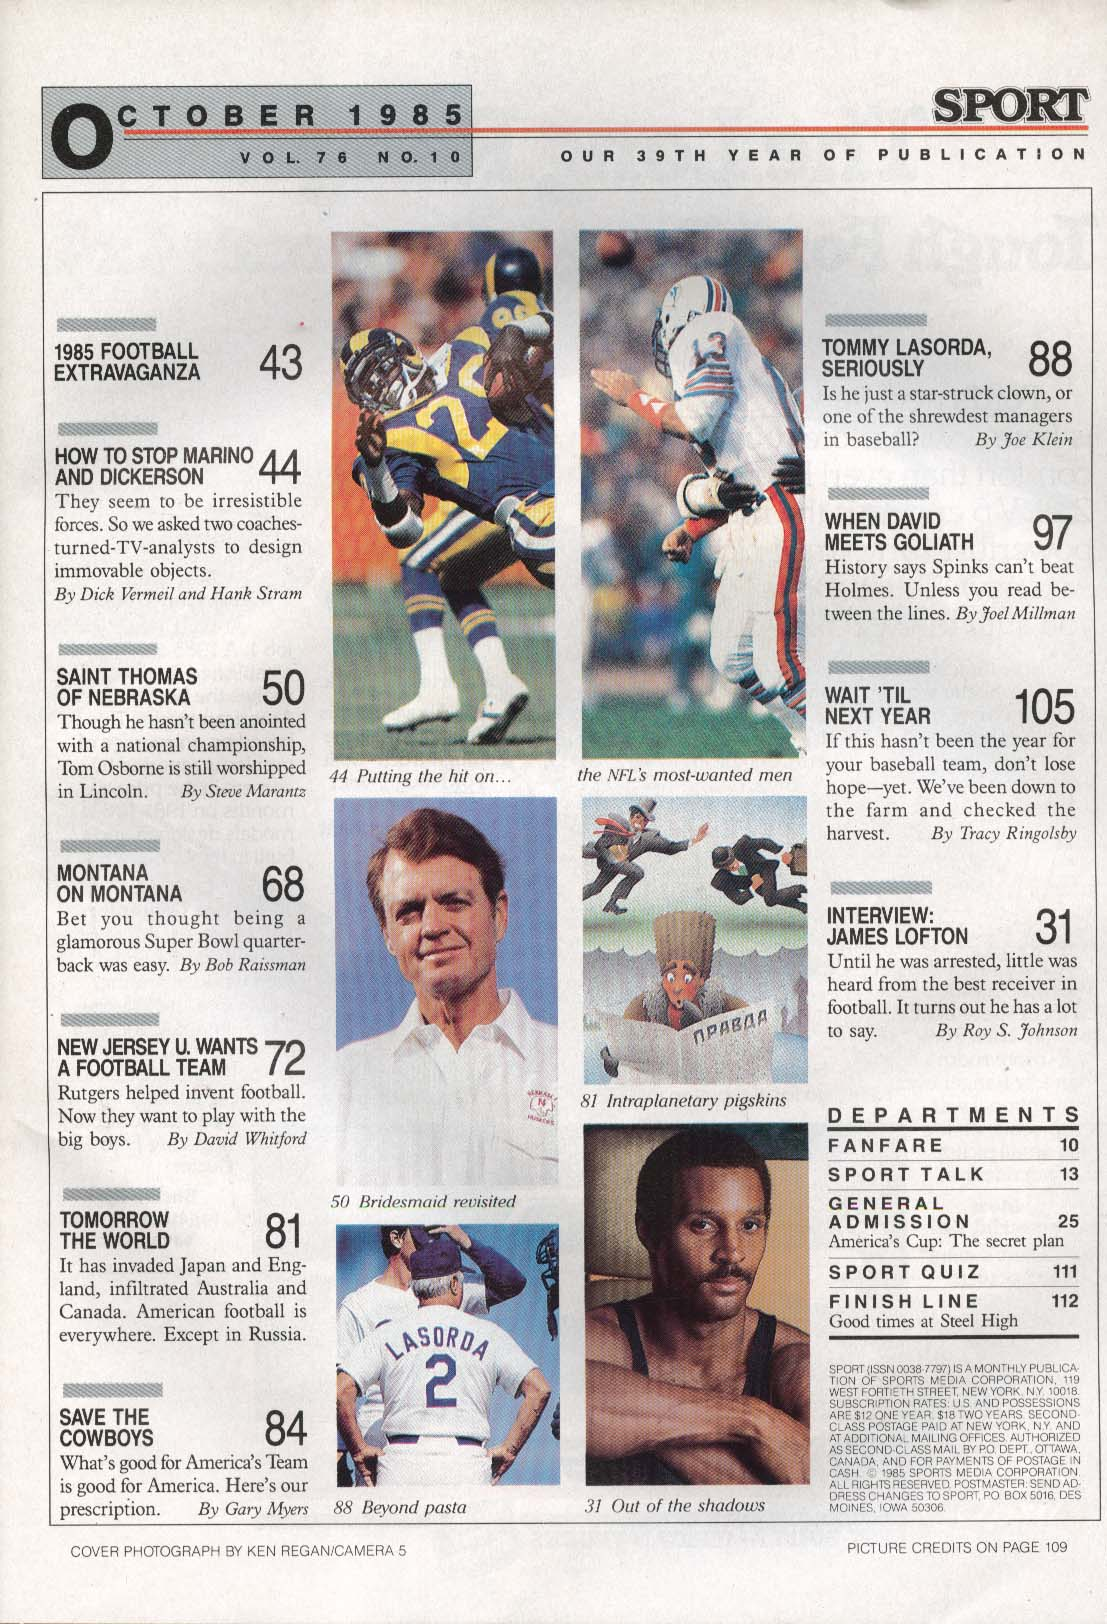 SPORT Dan Marino Joe Montana Tom Osborne James Lofton Tommy Lasorda 10 1985